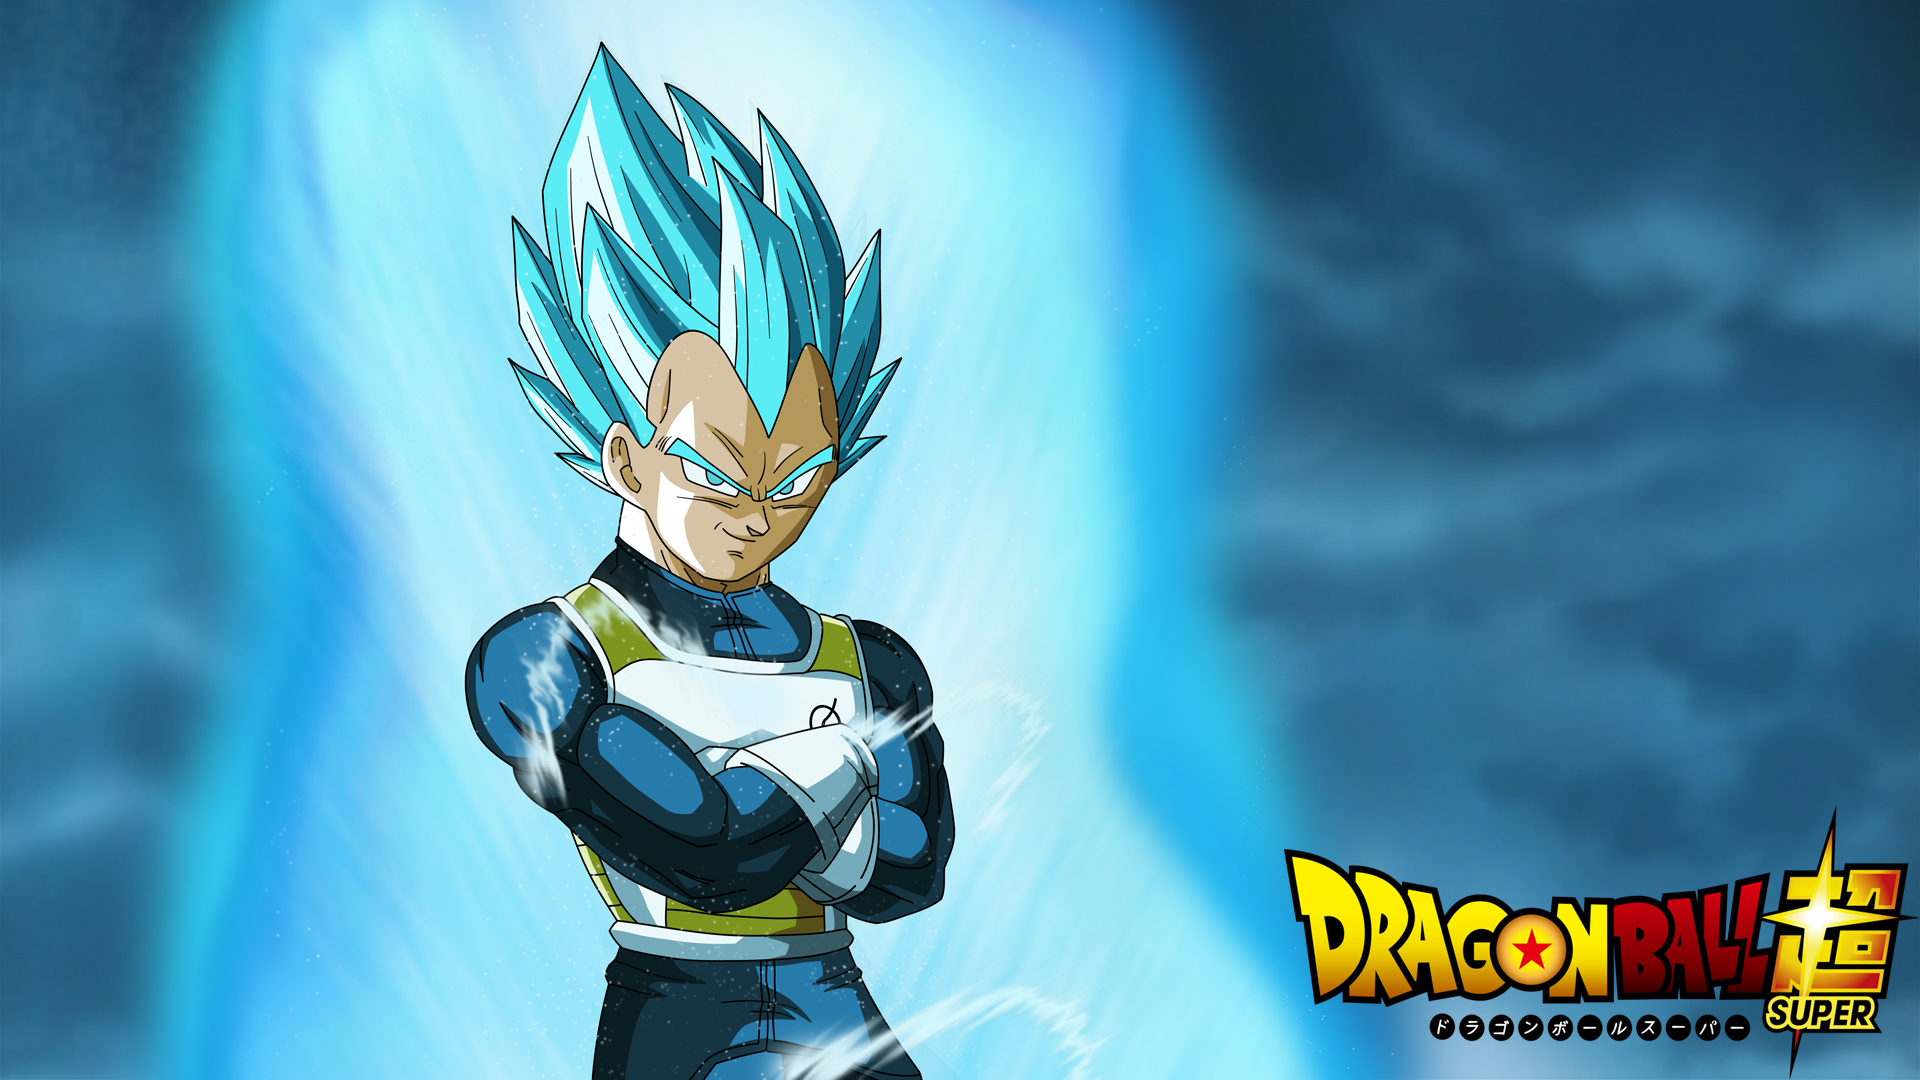 vegeta (ssj god ssj) full hd wallpaper and background image